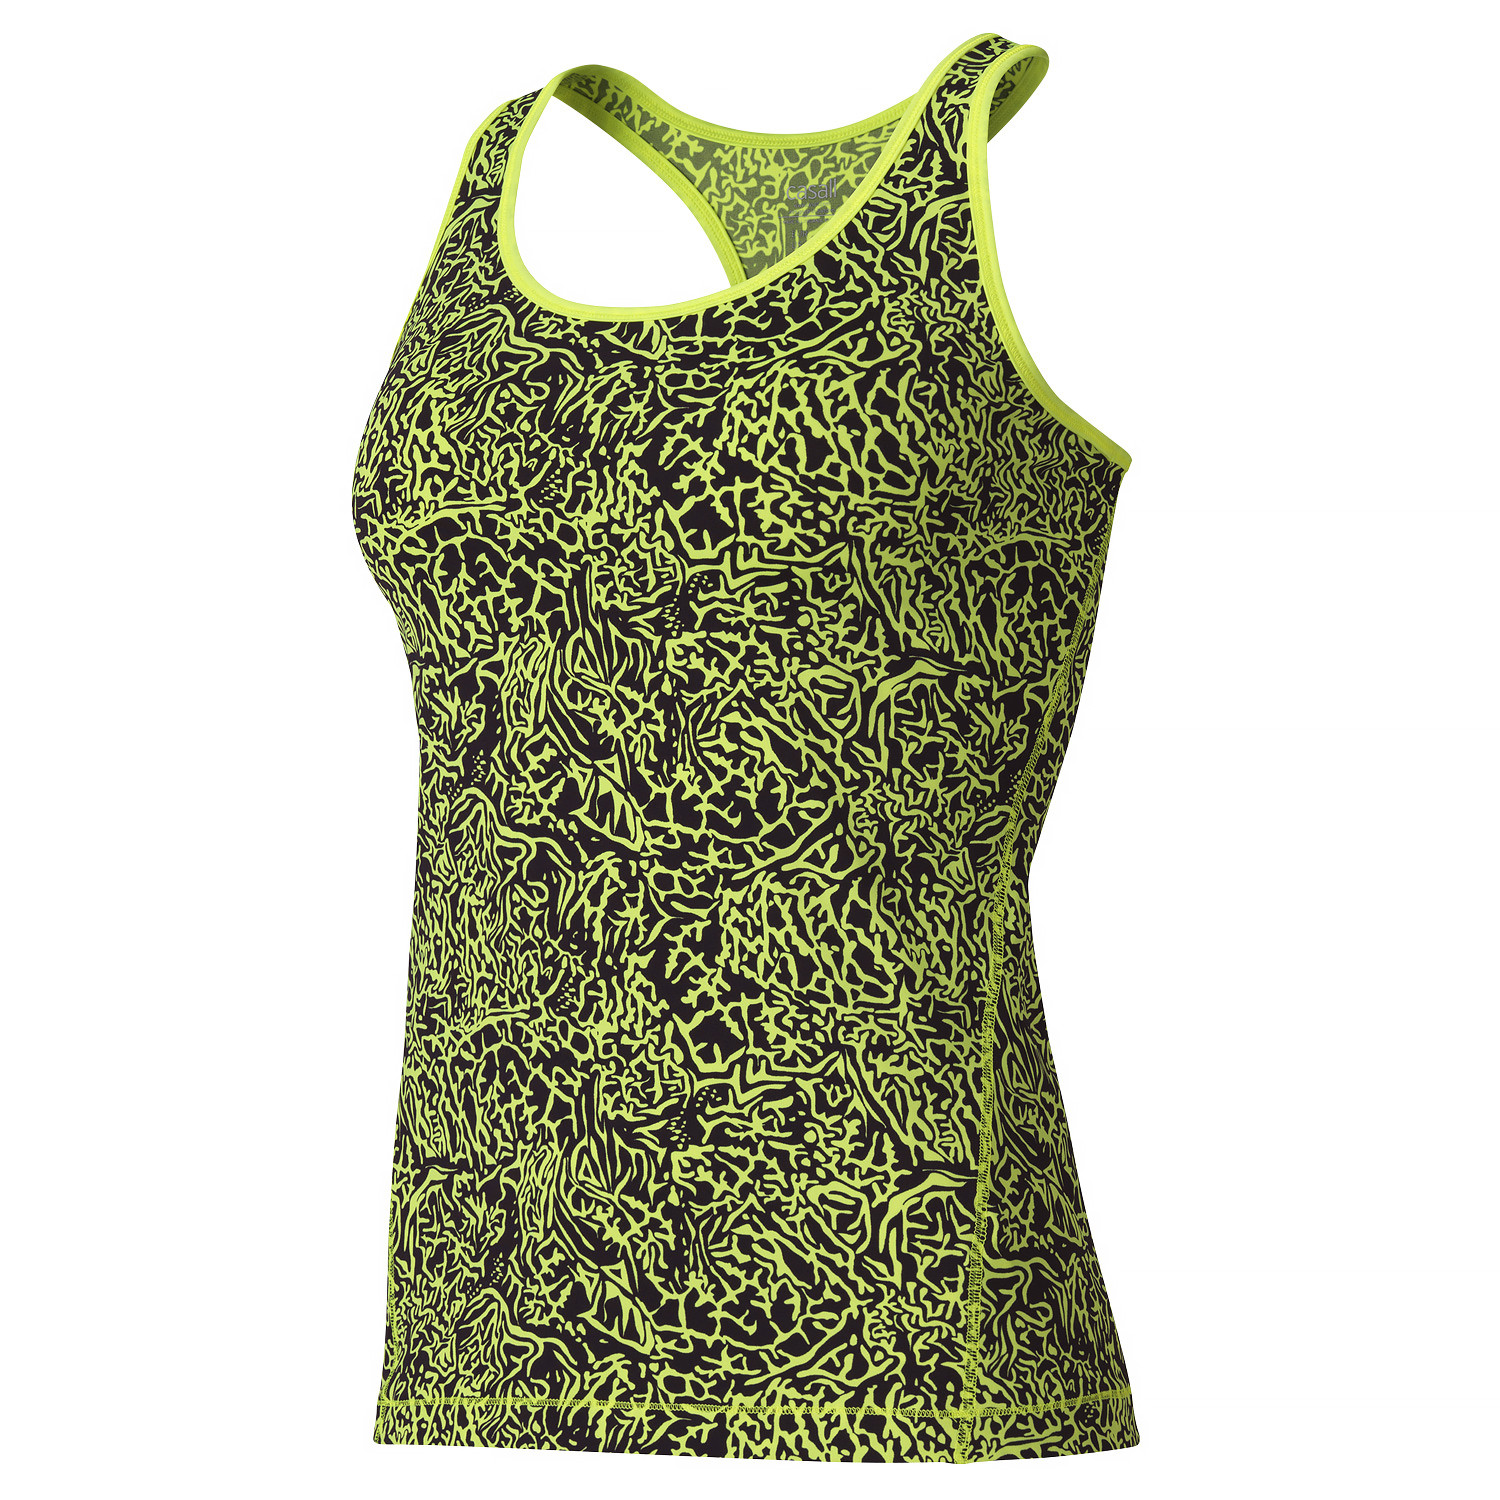 15174-casall-abstract-racerback-abstract-lime